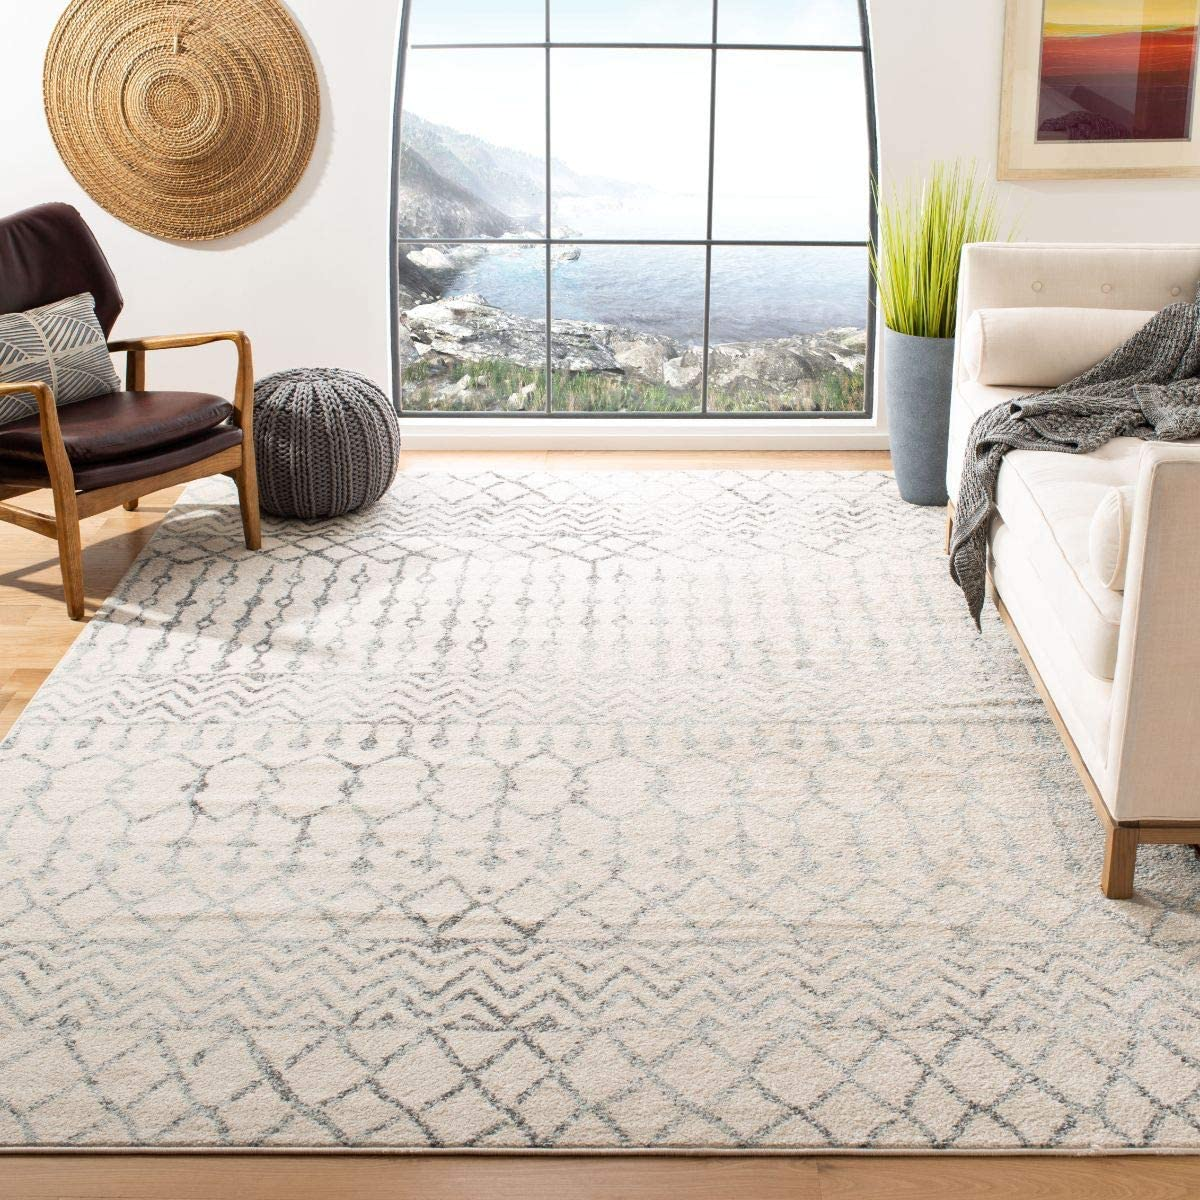 Safavieh Tulum Collection TUL270A Boho Moroccan Distressed Area Rug, 12 x 15 , Ivory Grey